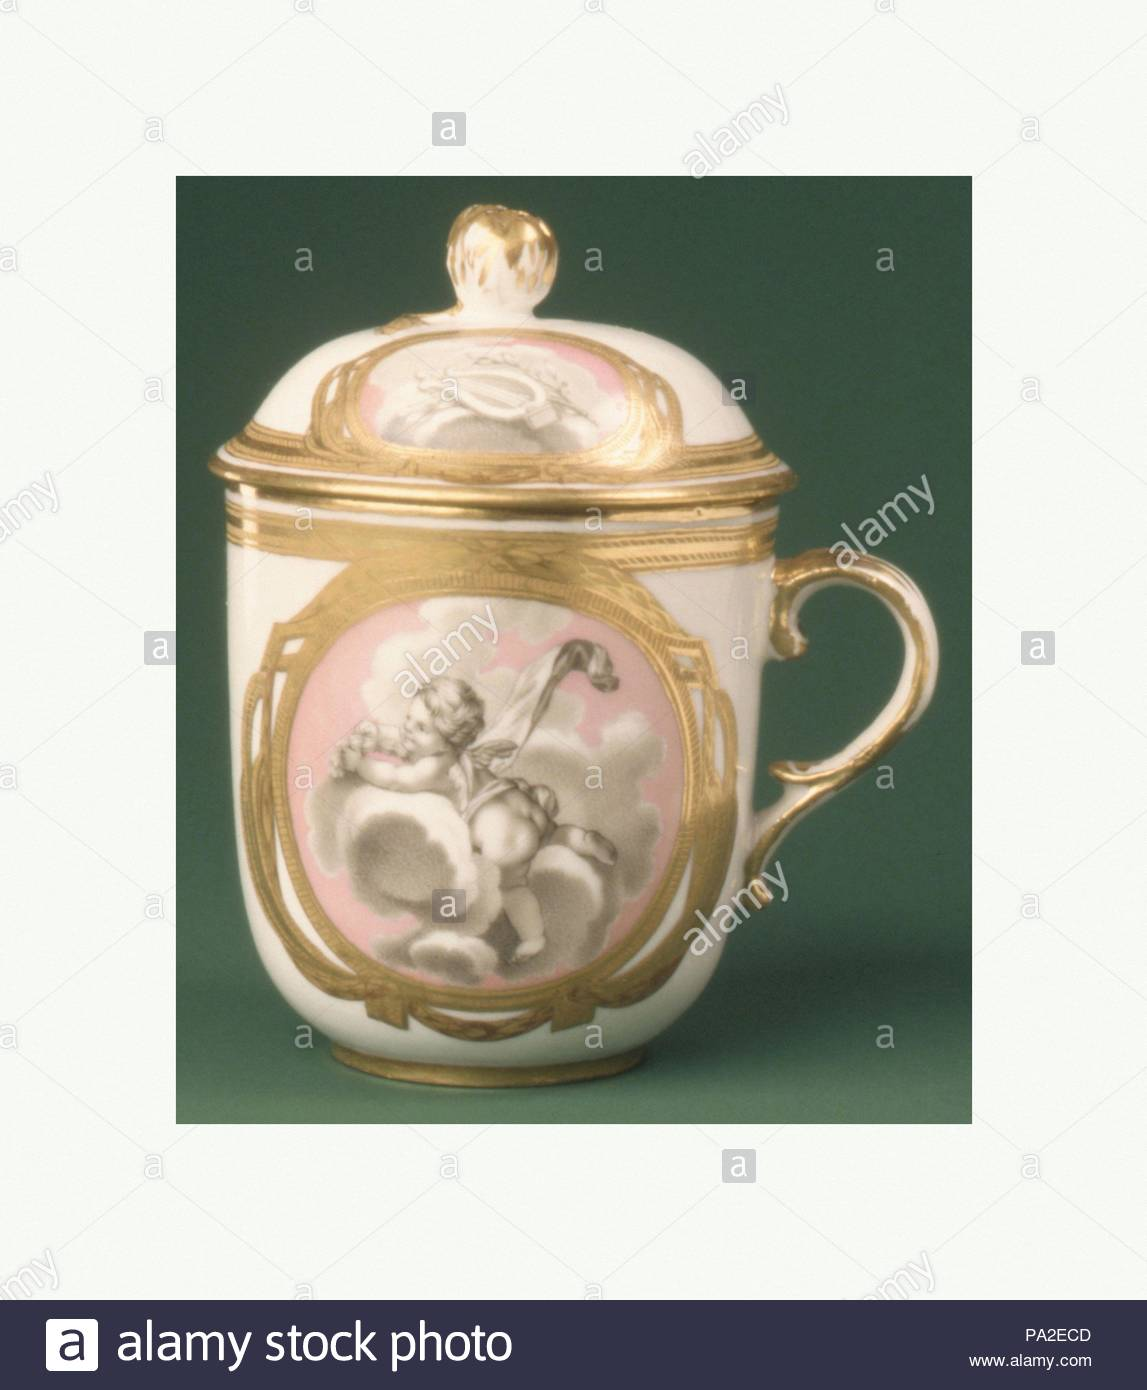 Cup With Cover From A Tea Service Ca 1775 Russian St